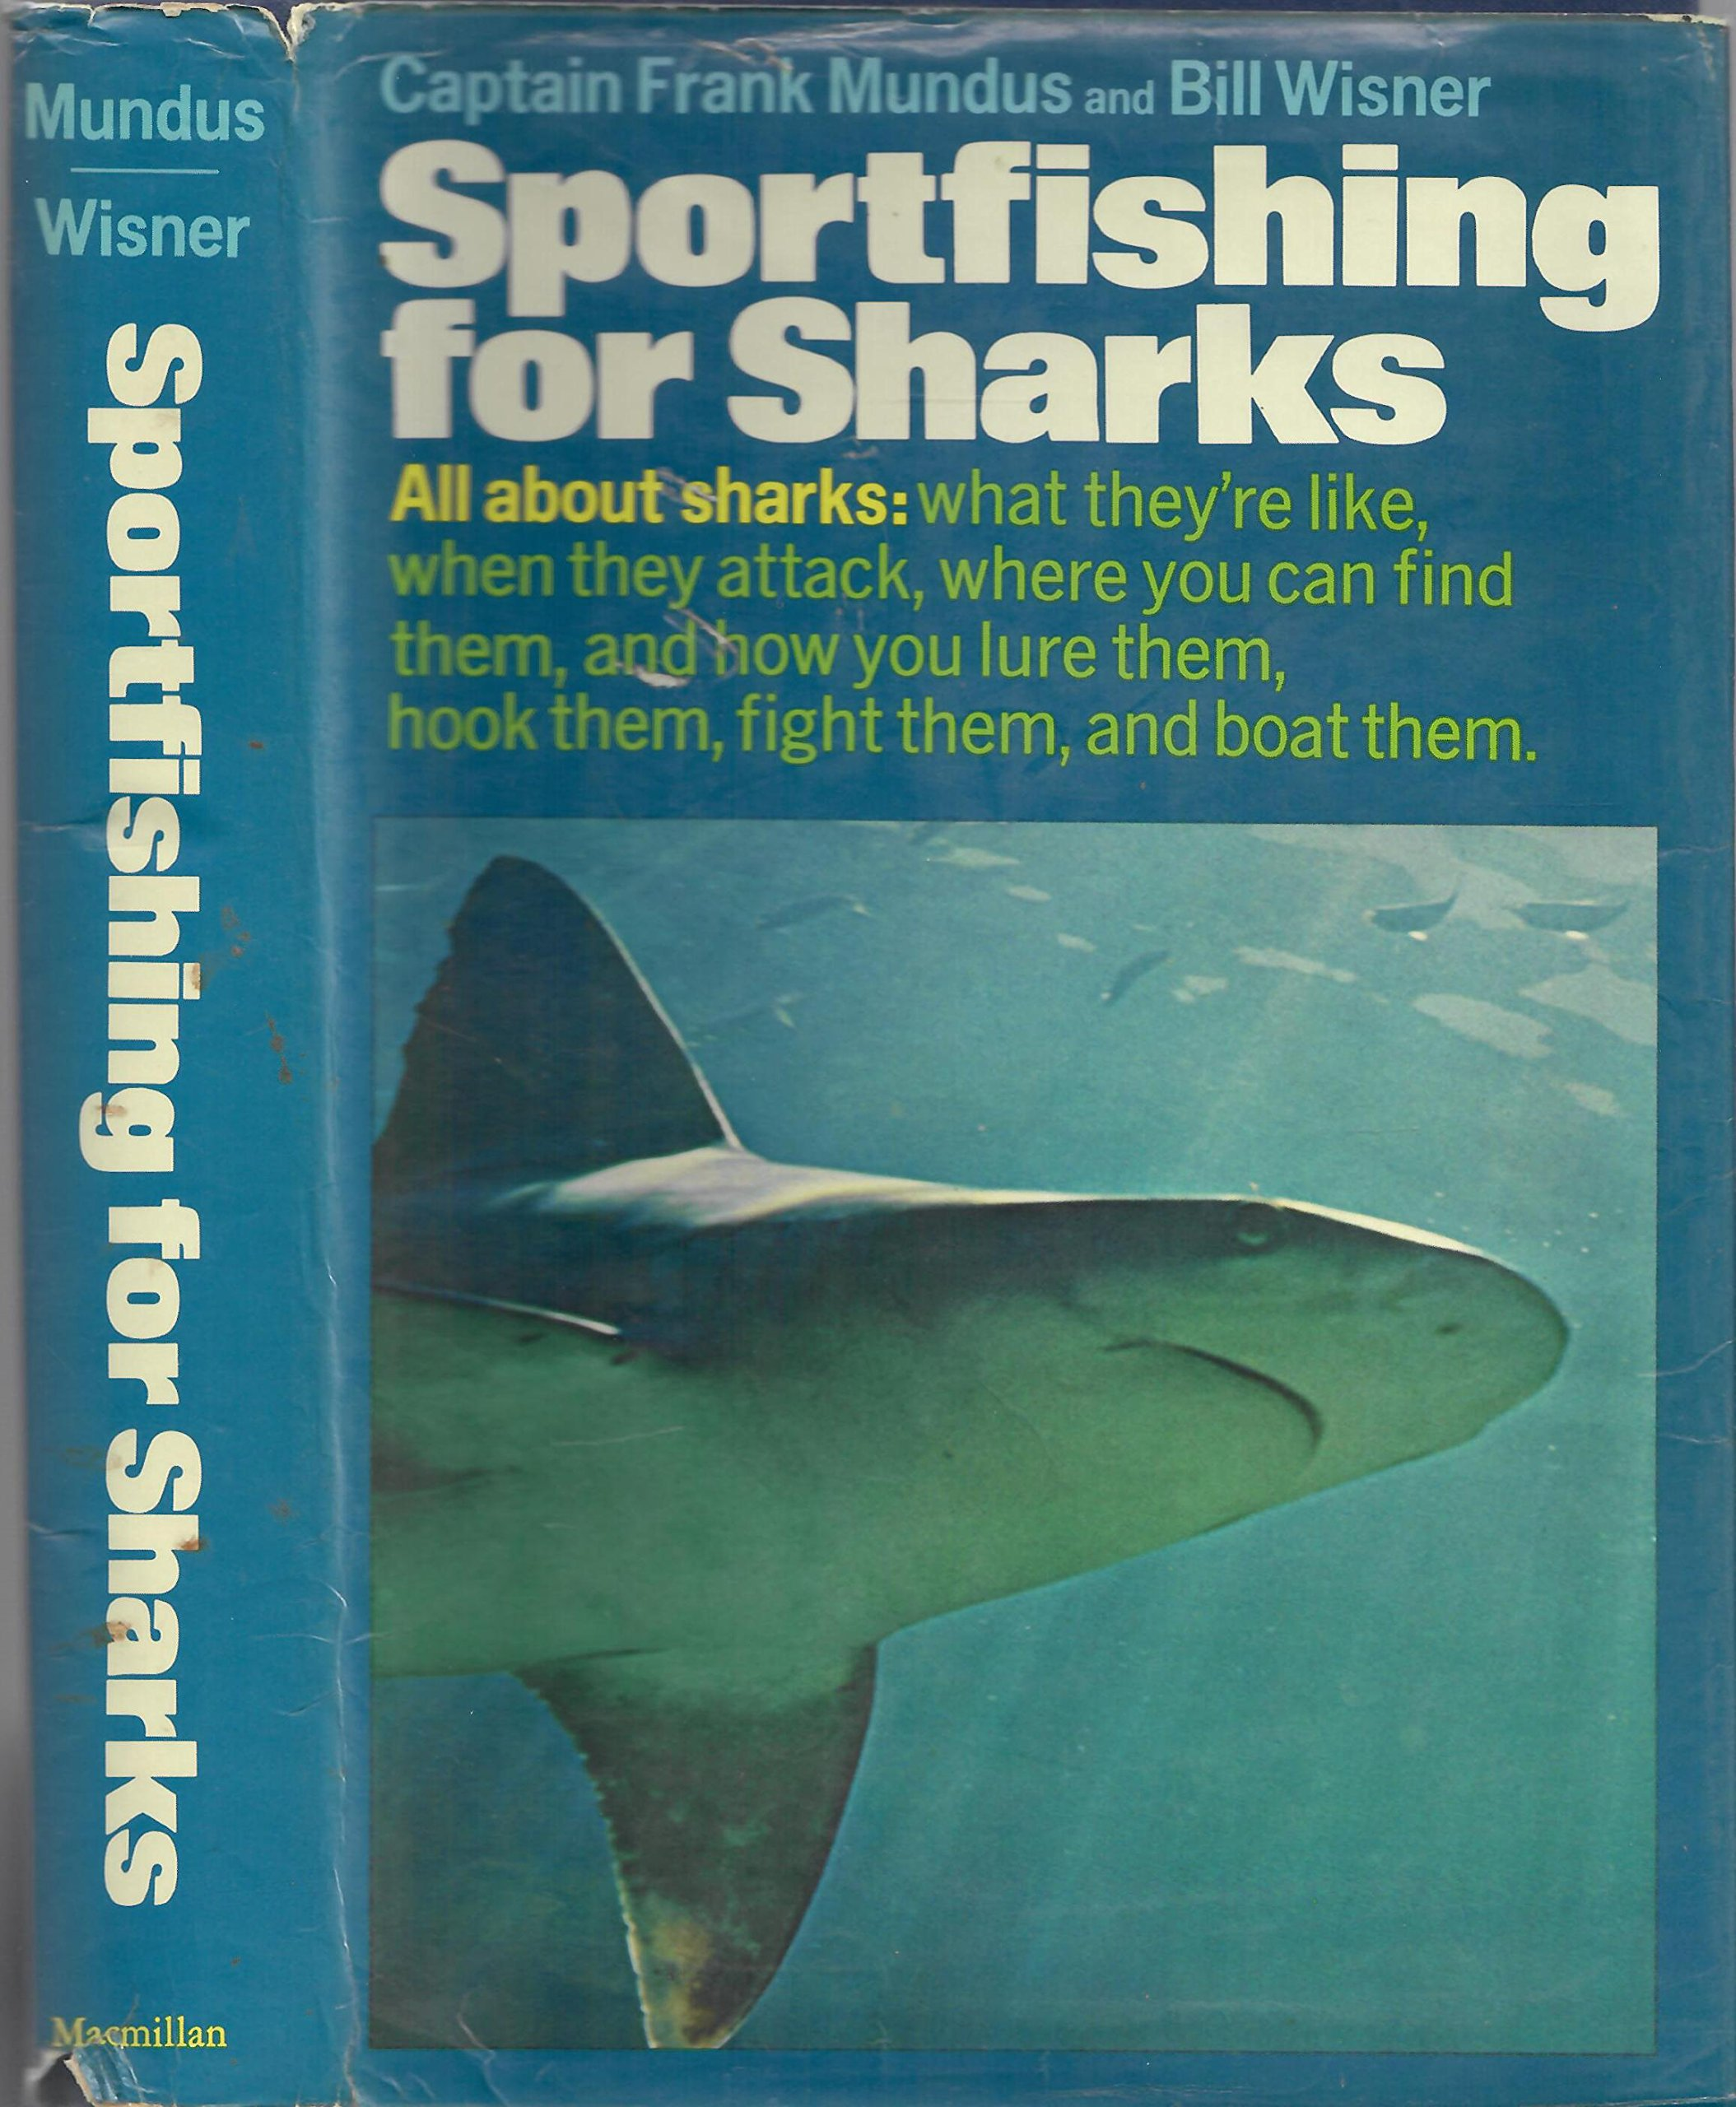 Sportfishing for Sharks: Frank Mundus, Bill Wisner: 9780025879508: Amazon.com: Books